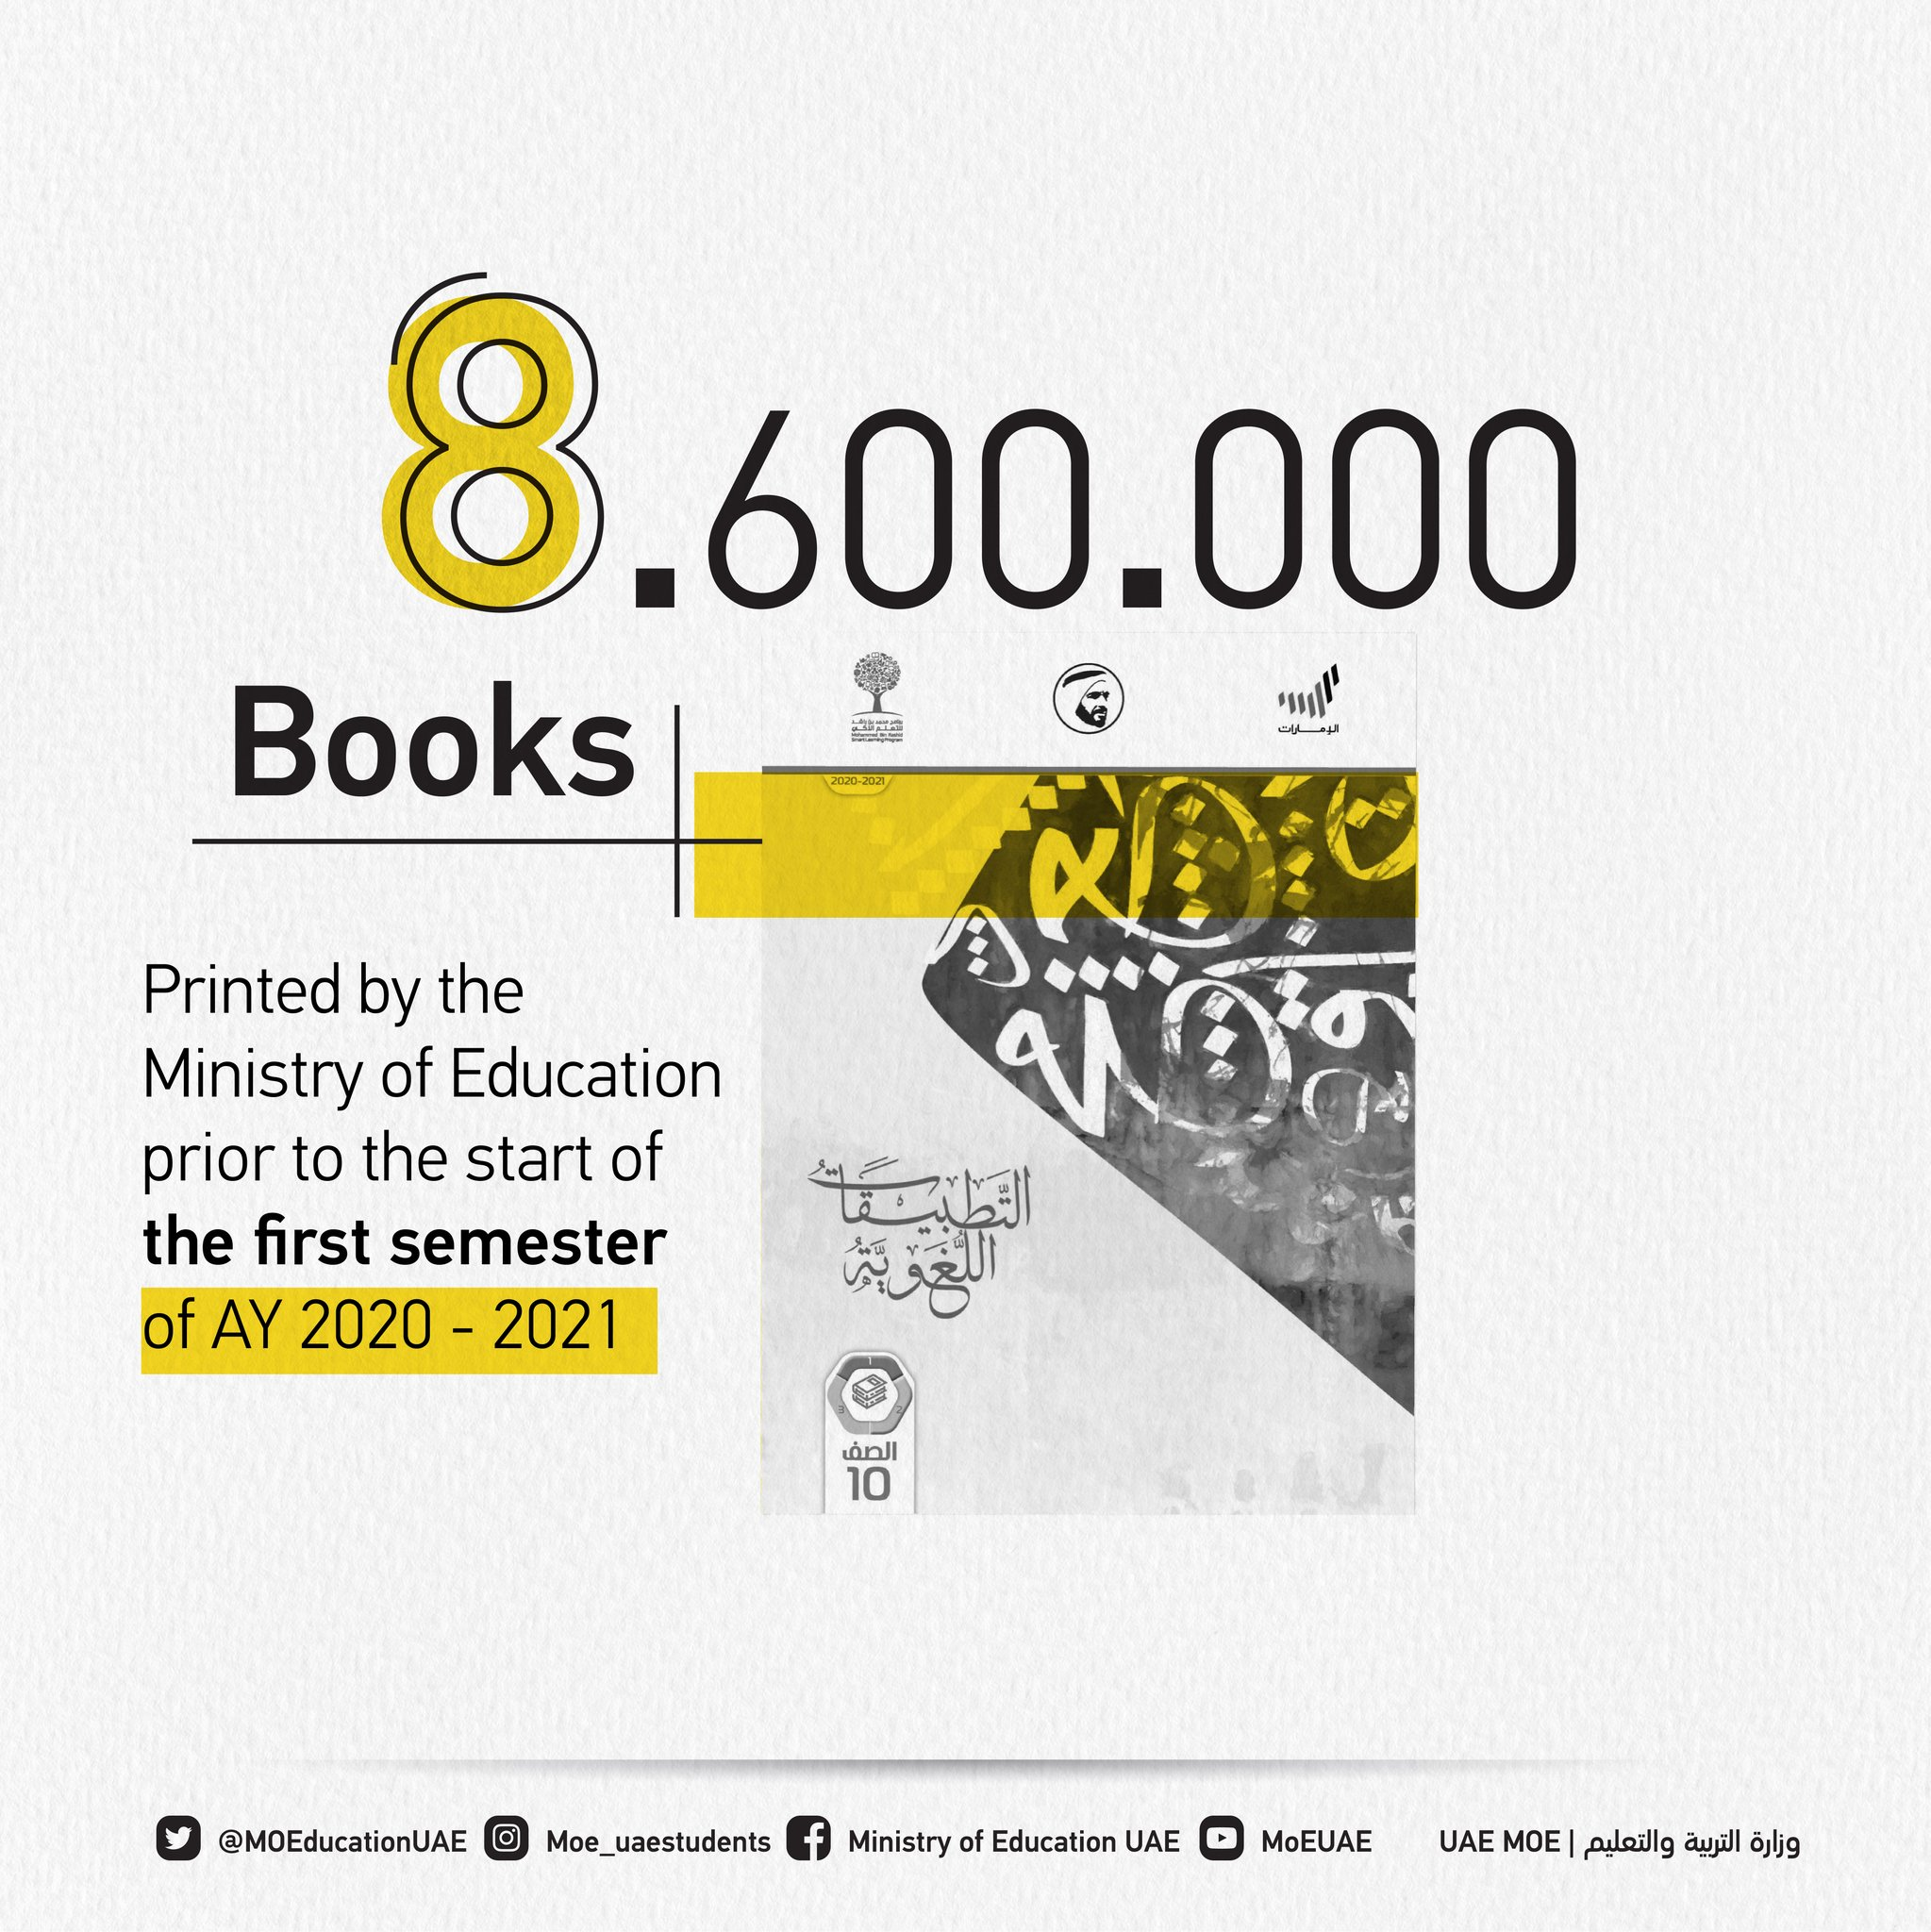 UAE's Ministry of Education Prints 8.6 Million Books for First Semester of AY 2020-2021